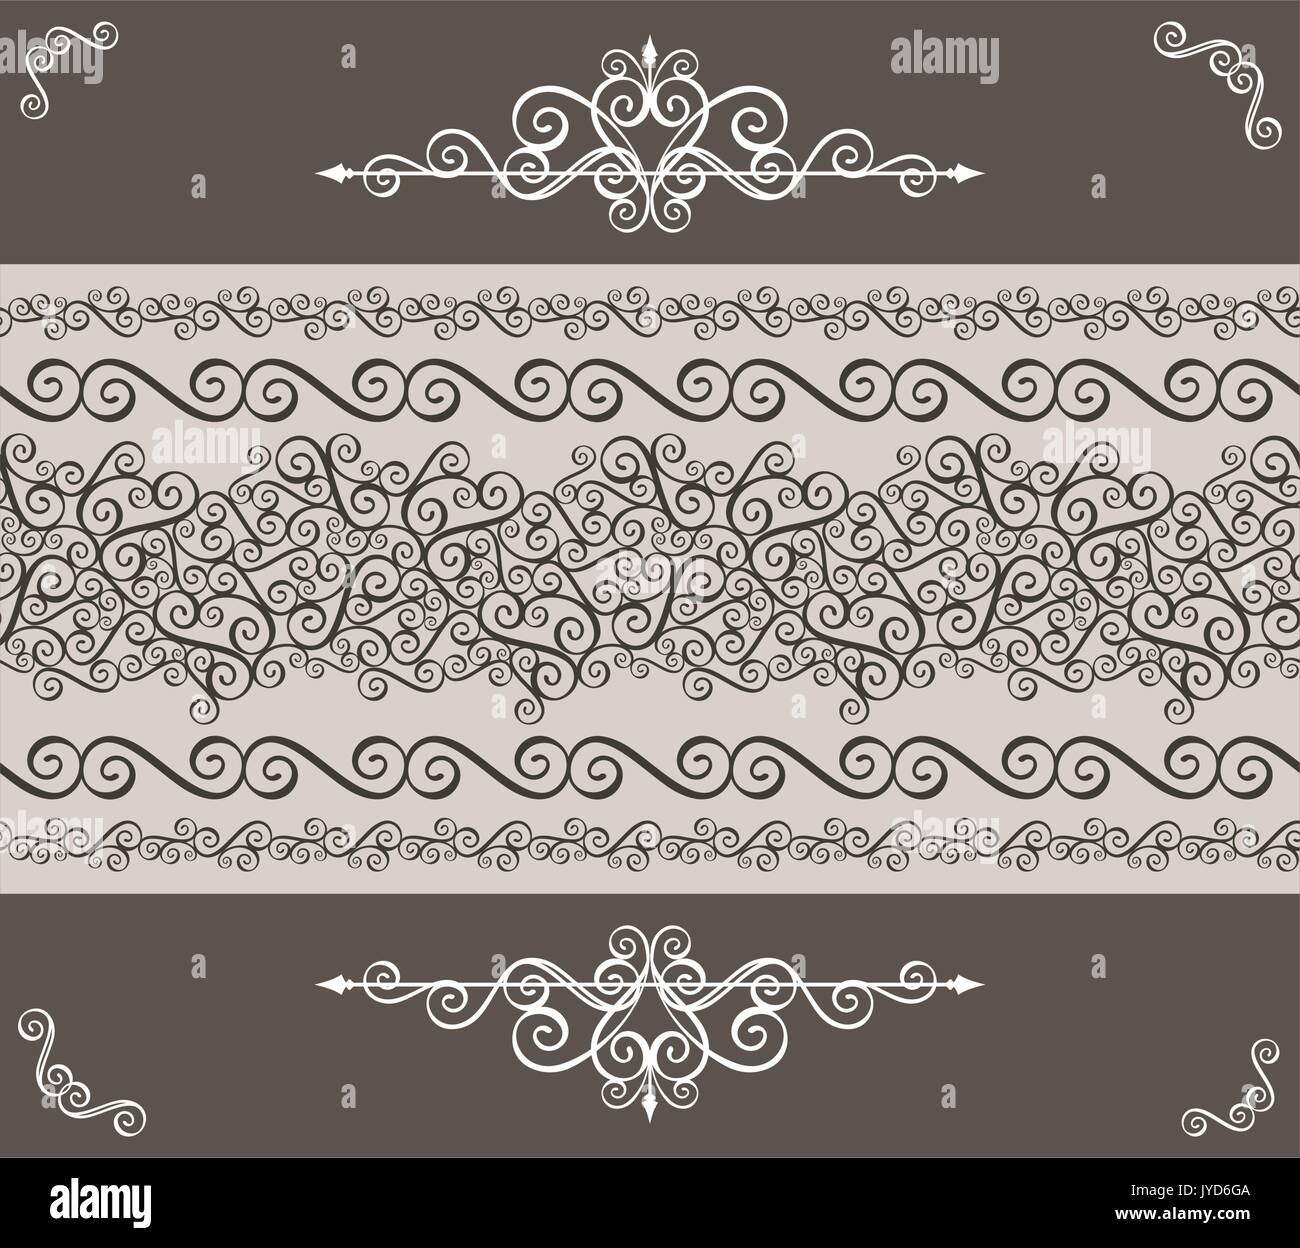 Calligraphy Ornaments Border And Design Elements For Page Decoration Vector Format Very Easy To Edit Individual Objects